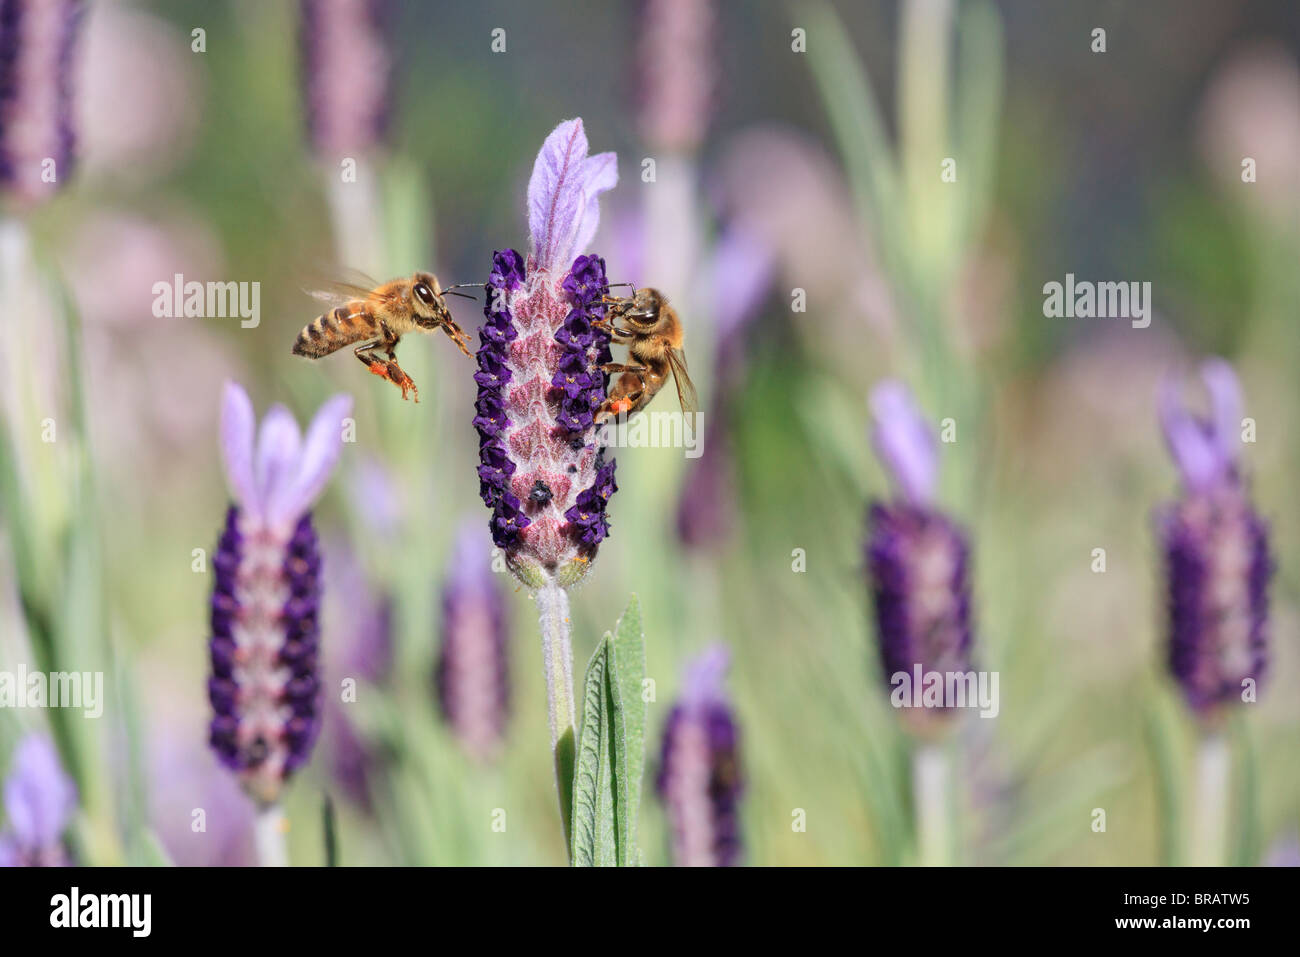 Two honey bees (Apis mellifera) on a French lavender flower (Lavandula stoechas). - Stock Image